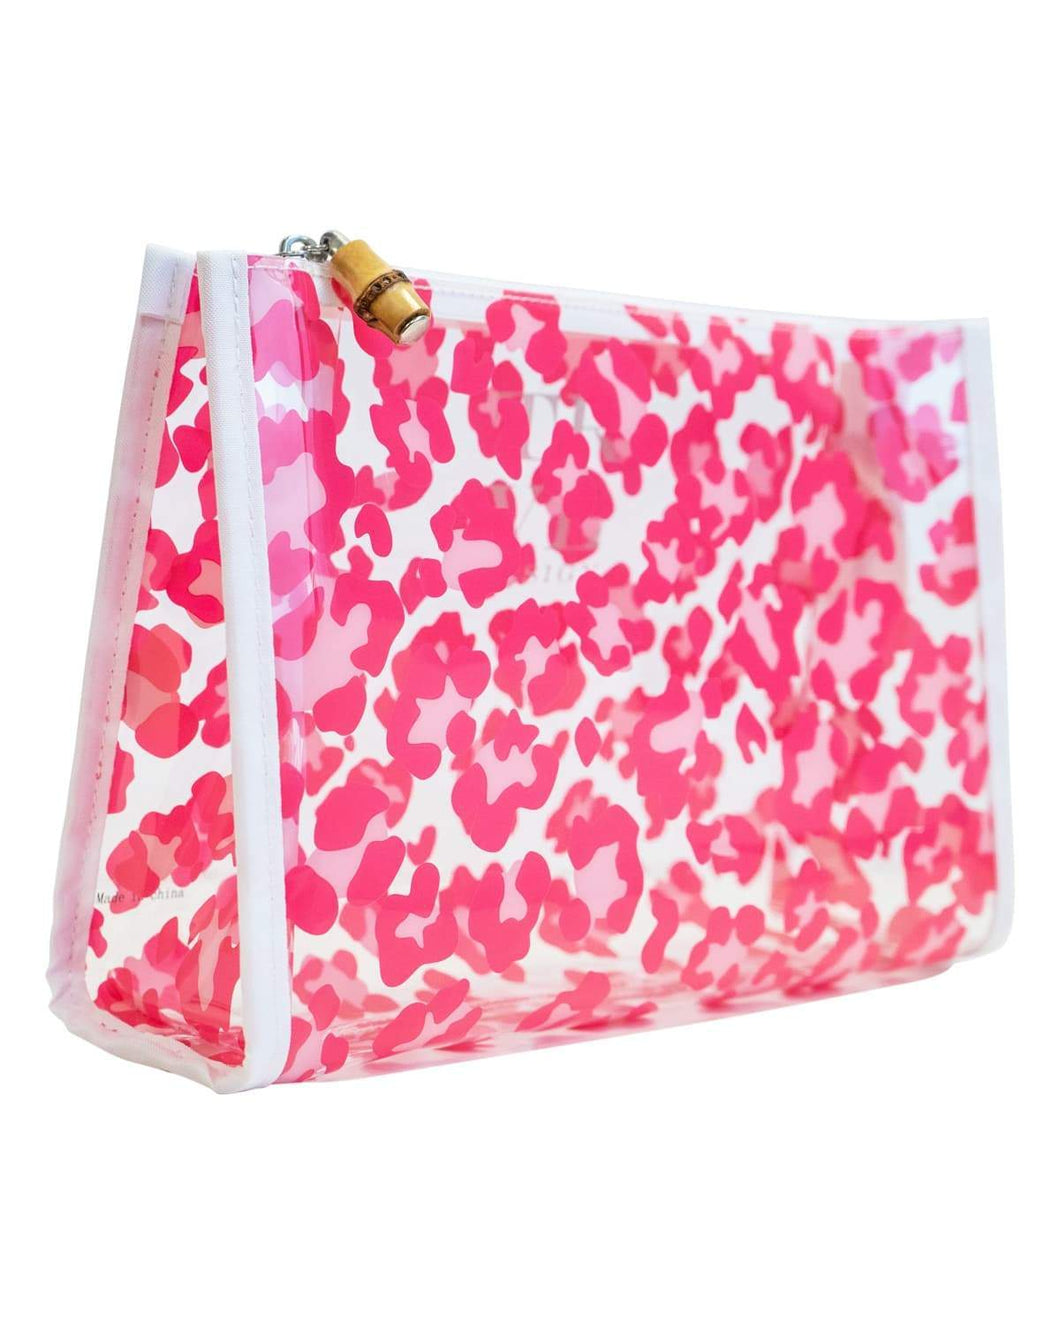 Clear Road Tripper Bag in Pink Leopard